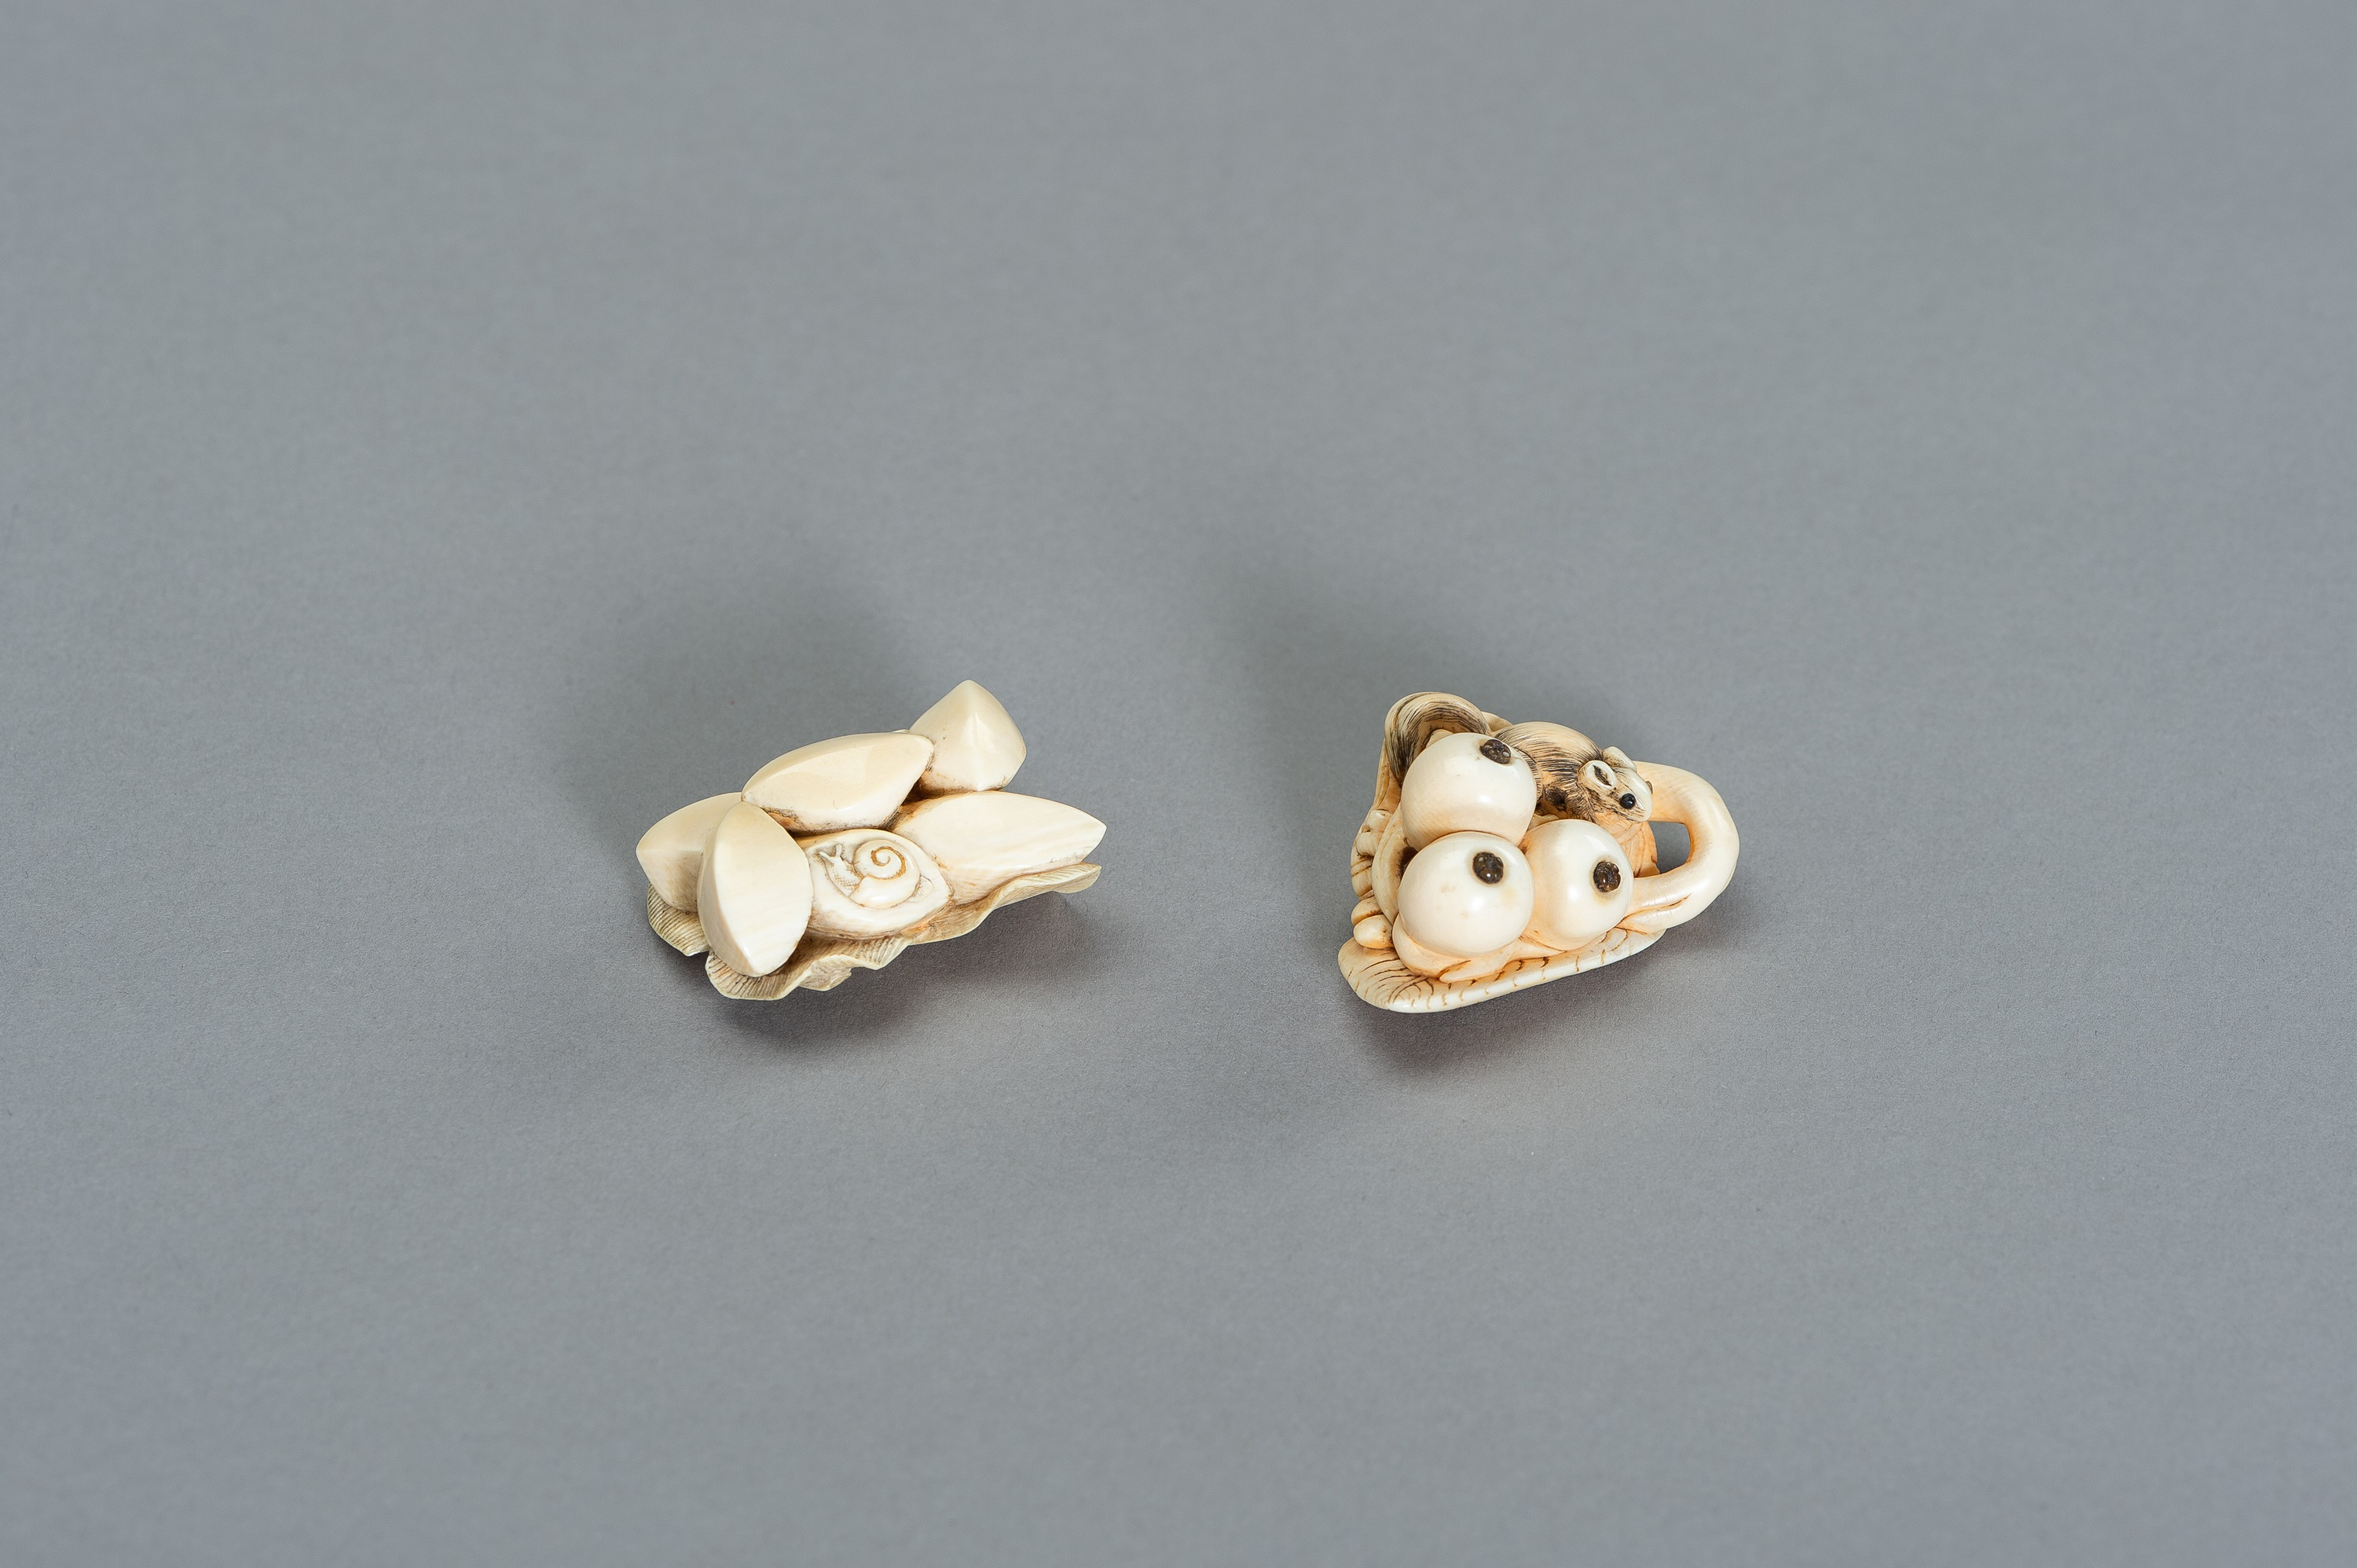 TWO STILL LIFE IVORY NETSUKE WITH SMALL CREATURES - Image 2 of 3